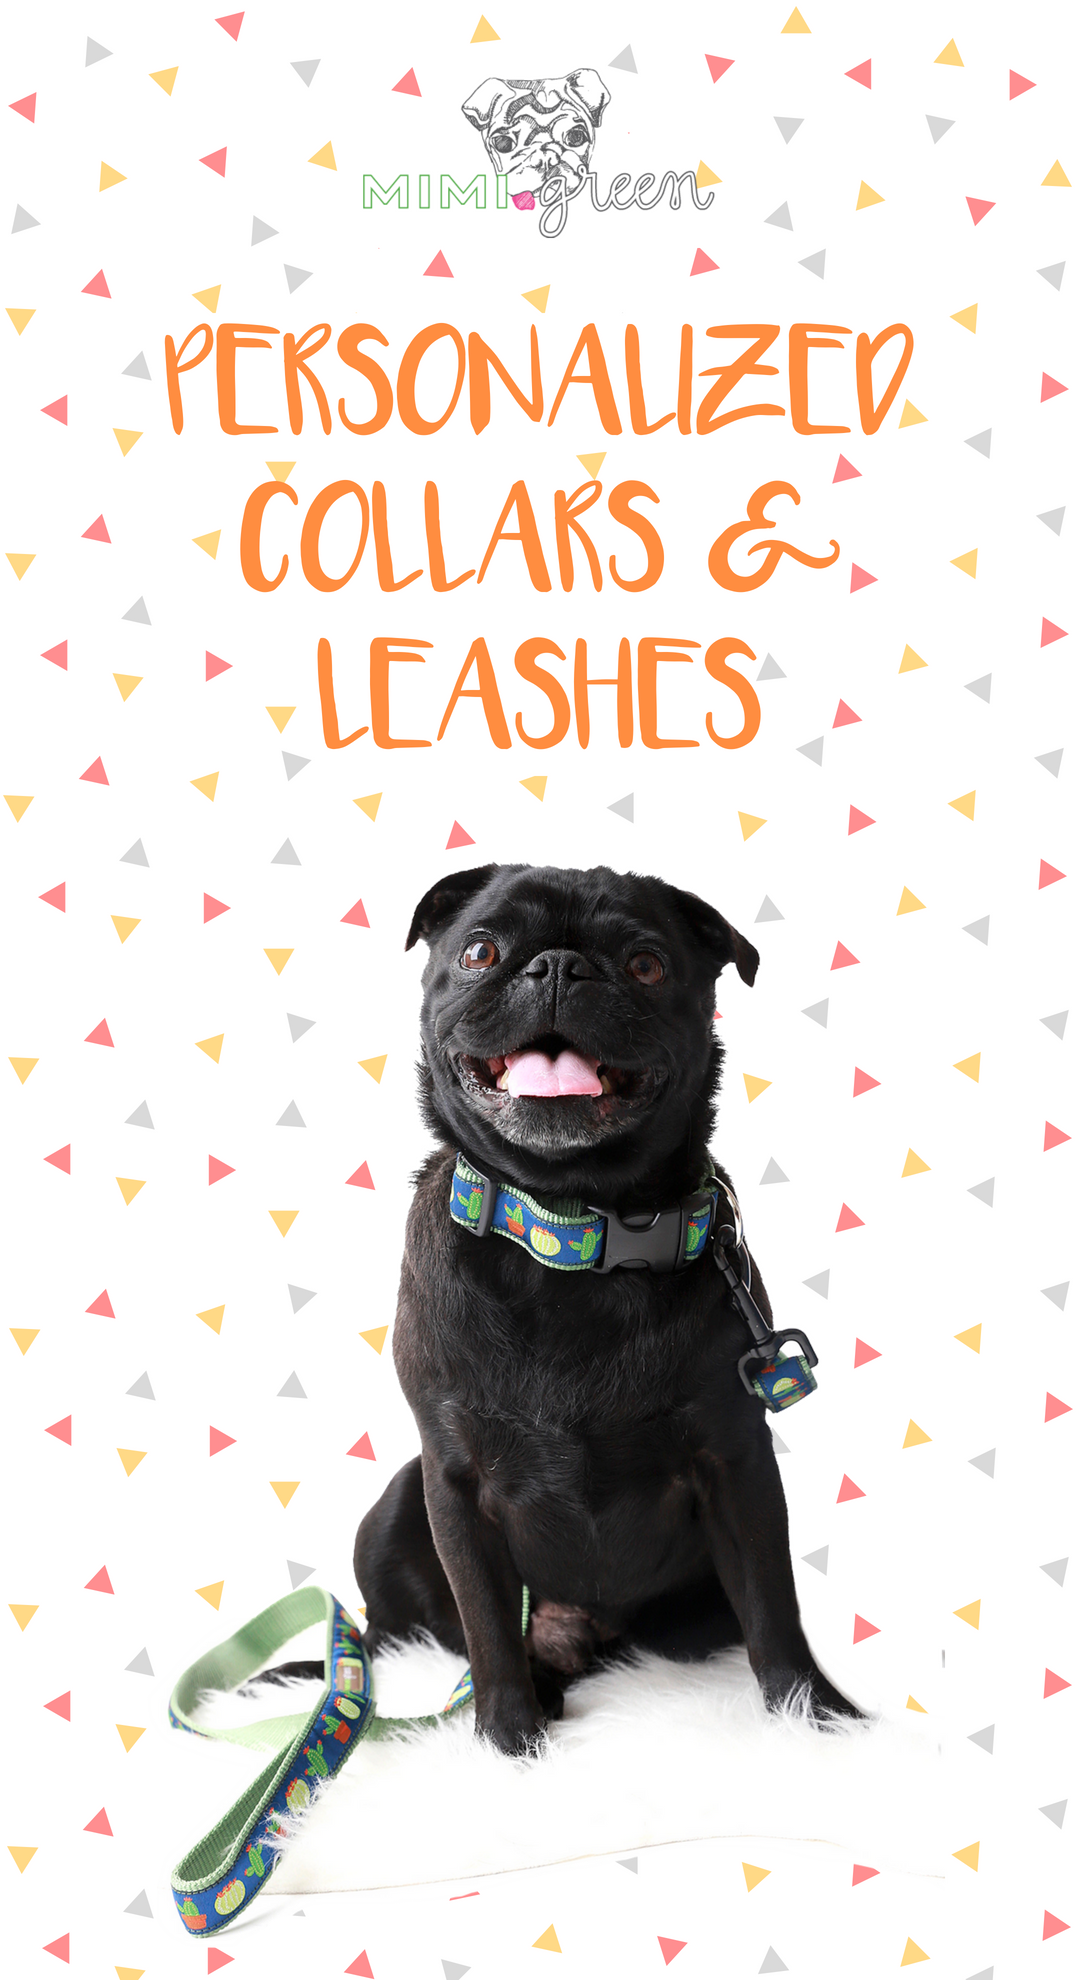 Customizable Collars Leashes And Accessories Personalize The Perfect Product For Your Pup Free Shipping On Orders Dog Gifts Marley Dog Designer Dog Collars